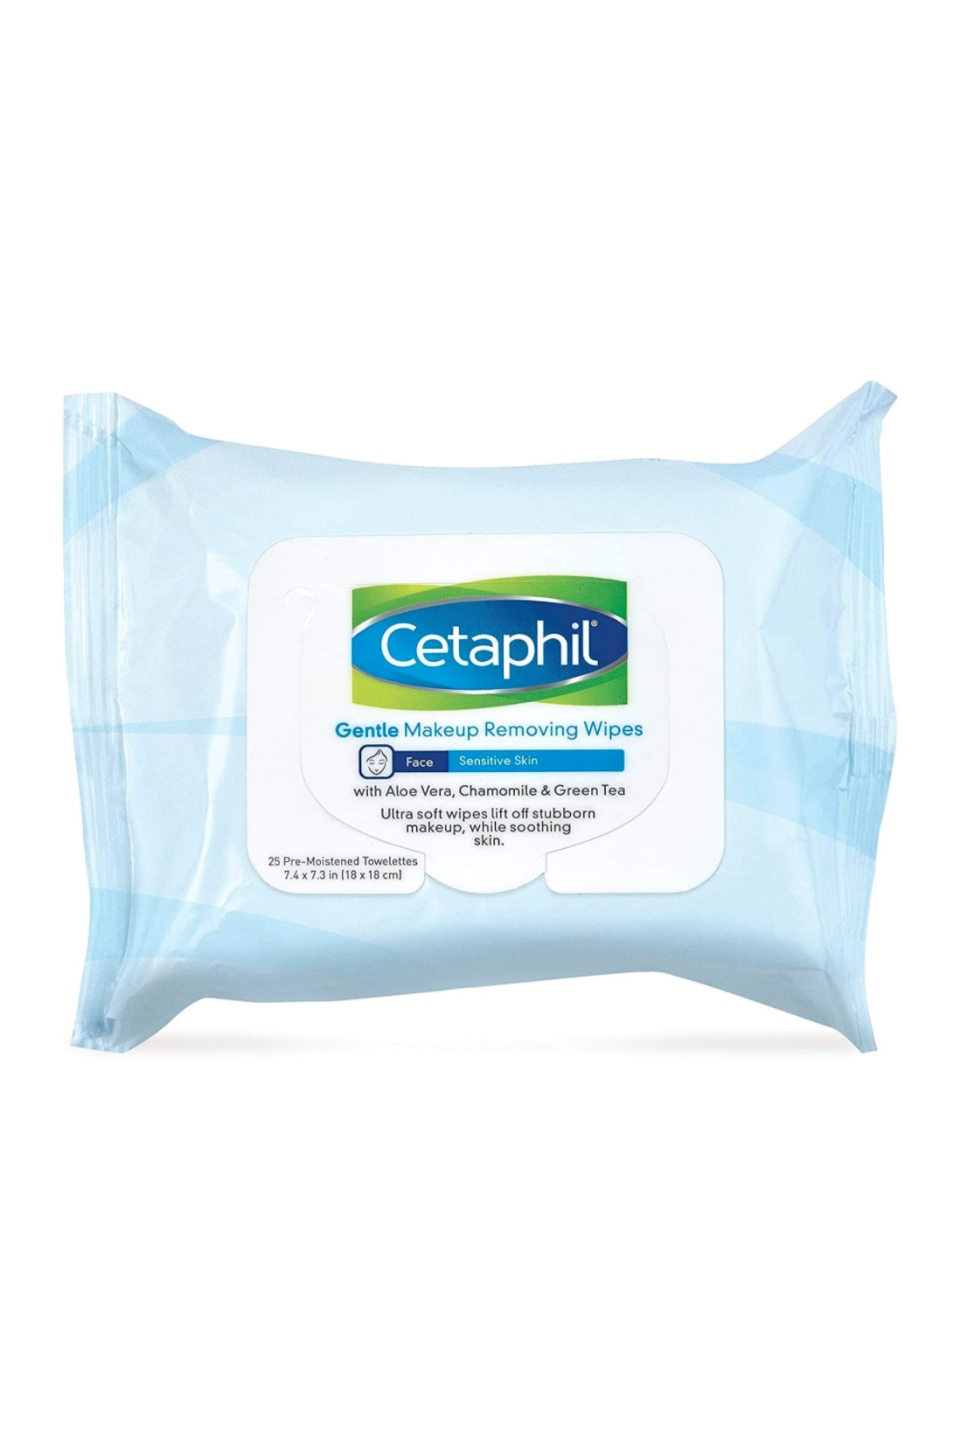 """<p><strong>Cetaphil</strong></p><p>amazon.com</p><p><strong>$6.19</strong></p><p><a href=""""https://www.amazon.com/dp/B01M4NFD2N?tag=syn-yahoo-20&ascsubtag=%5Bartid%7C10058.g.33863683%5Bsrc%7Cyahoo-us"""" rel=""""nofollow noopener"""" target=""""_blank"""" data-ylk=""""slk:SHOP IT"""" class=""""link rapid-noclick-resp"""">SHOP IT</a></p><p>If your skin erupts in red spots or blemishes when you cleanse it too harshly, Cetaphil's wipes are the easy-to-use answer to your removal needs. Aloe vera and chamomile help sooth the complexion while you wipe away any impurities. </p>"""